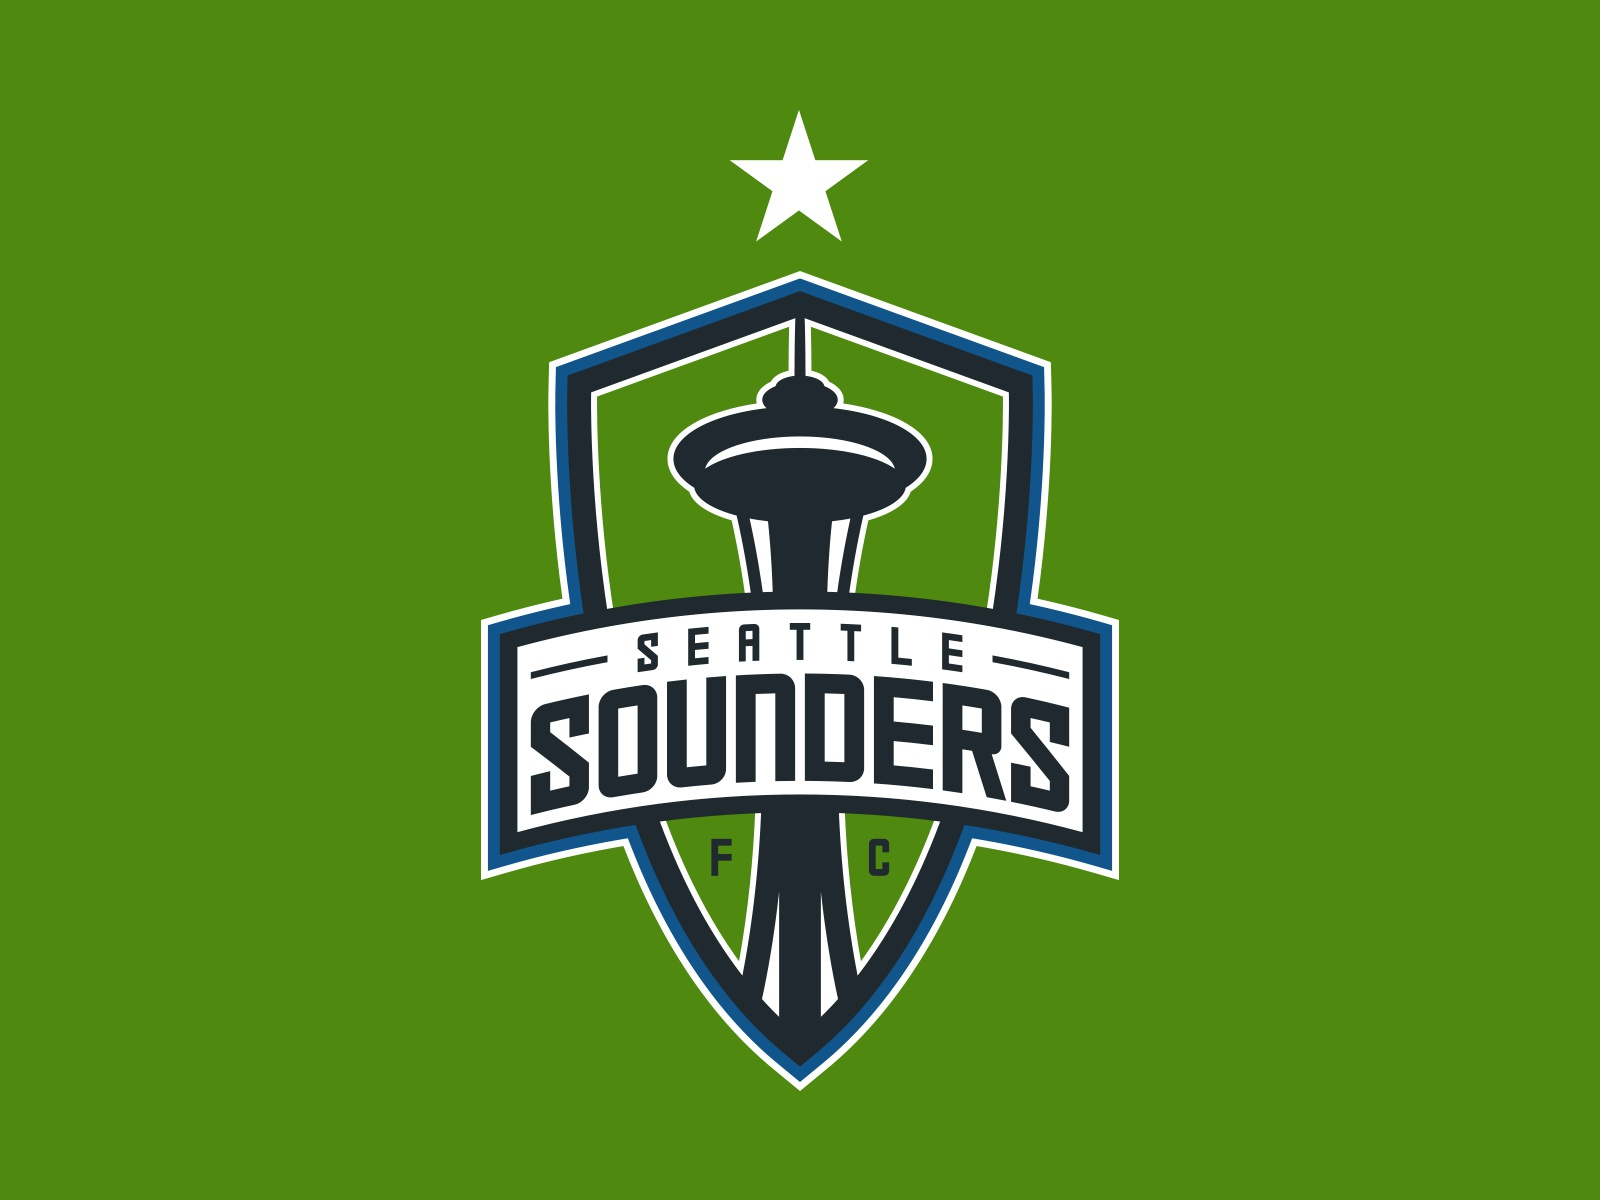 Seattle Sounders Brand Refresh Proposal By Addison Foote On Dribbble